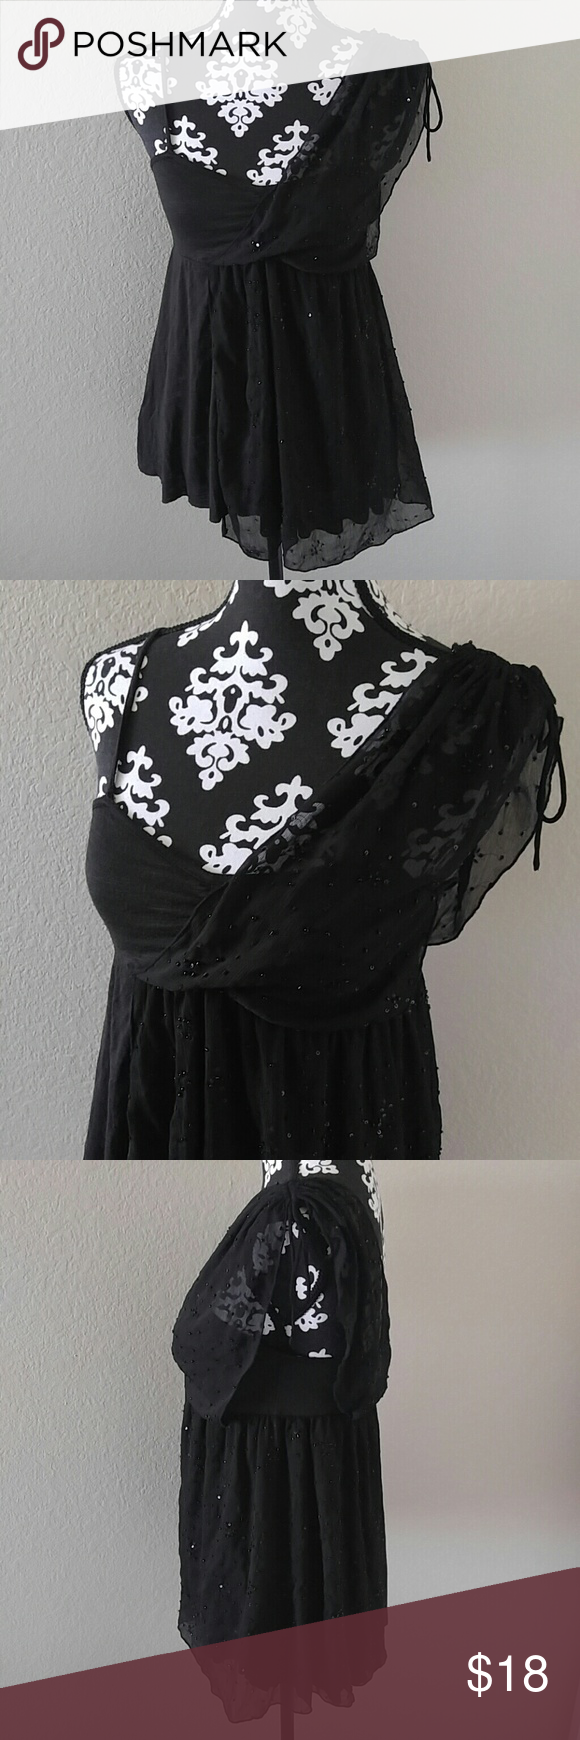 """Free People Embellished Top Free People spaghetti strap top? Adjustable straps? Sheer sequins overlay over left shoulder? Black? 100% polyester? Size XS? NWT- sales tag was removed but the baggie with extra sequins in still attached. The shirt is unworn?  Measurements laying flat NOT stretched:? Underarm to underarm: 13""""? Length: 26"""" Free People Tops"""